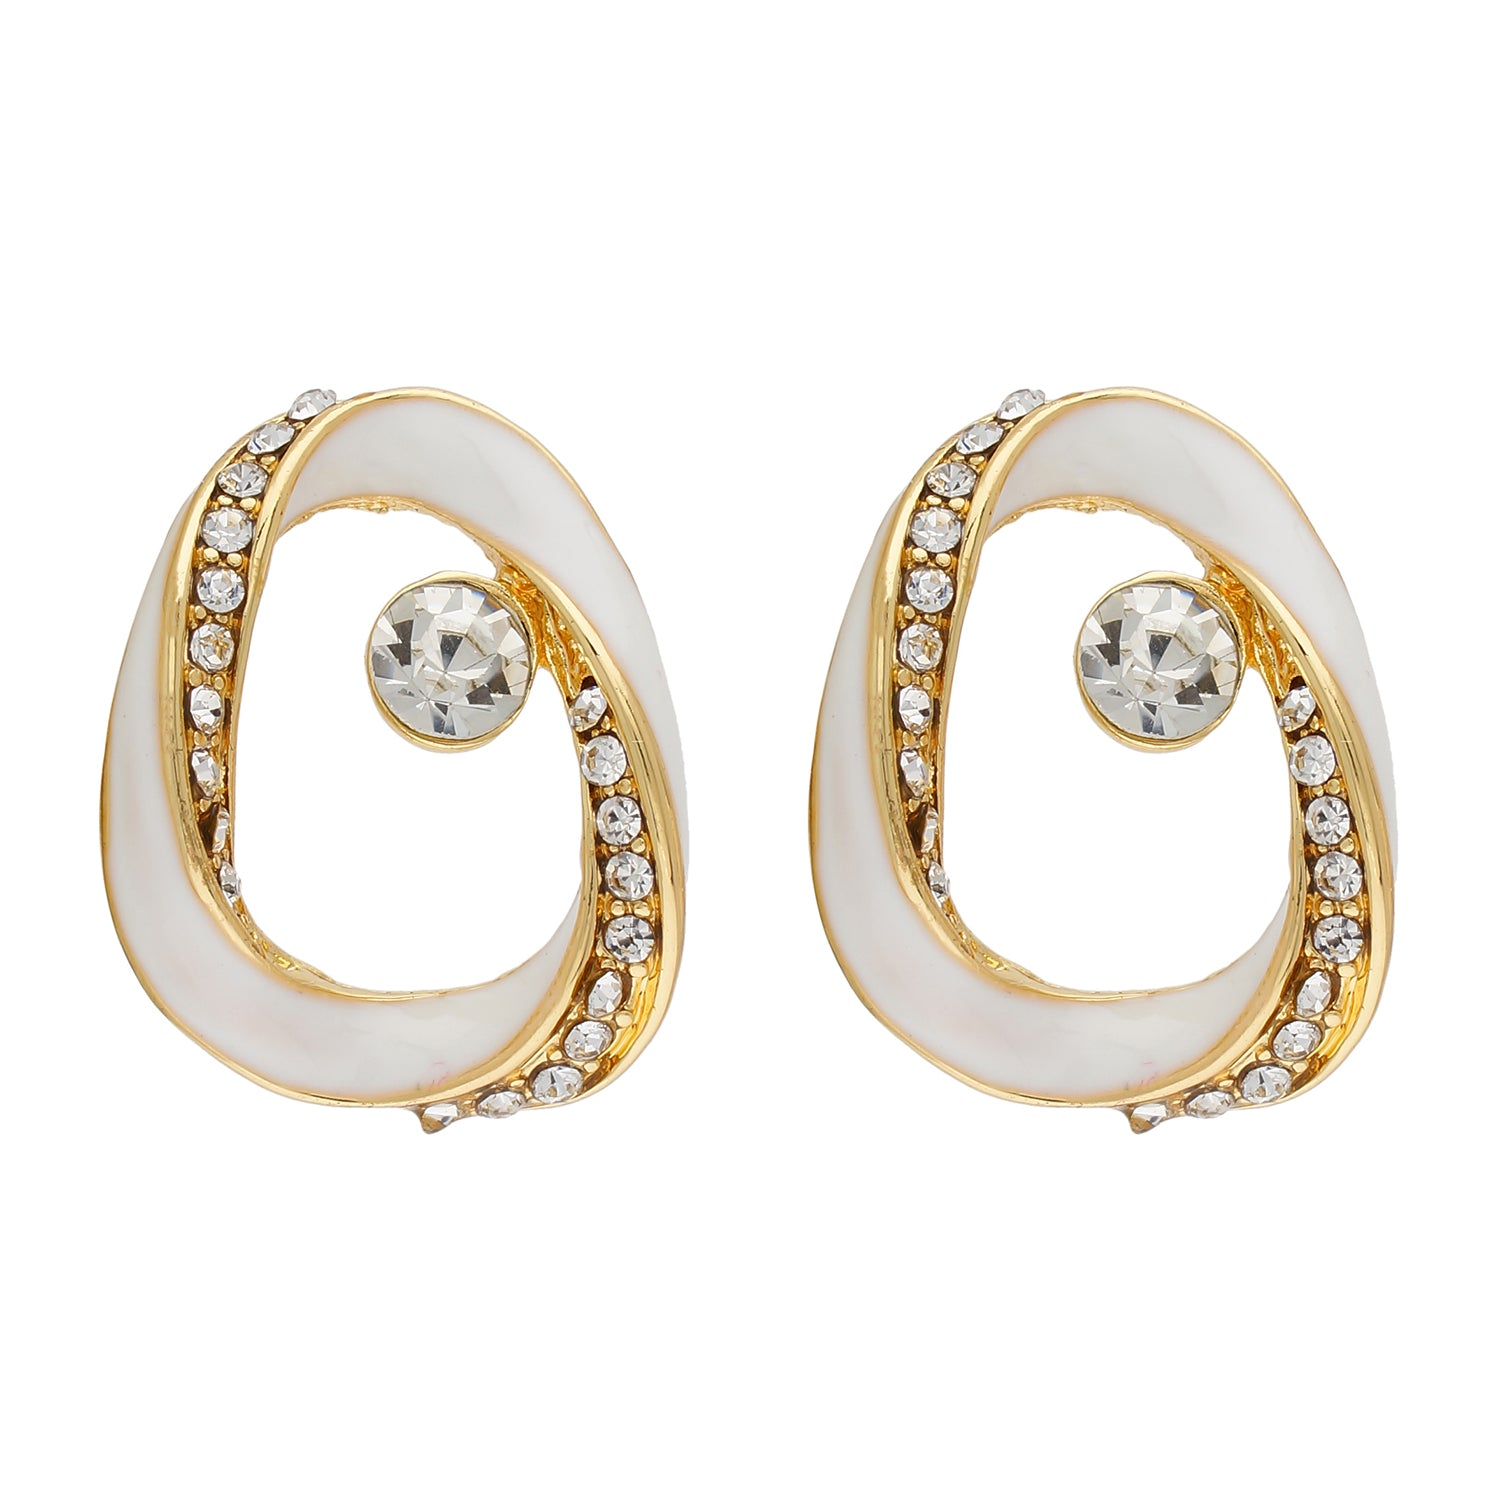 Contemporary White and Gold Colour Oval Design Enamel Enhanced Earring for Girls and Women